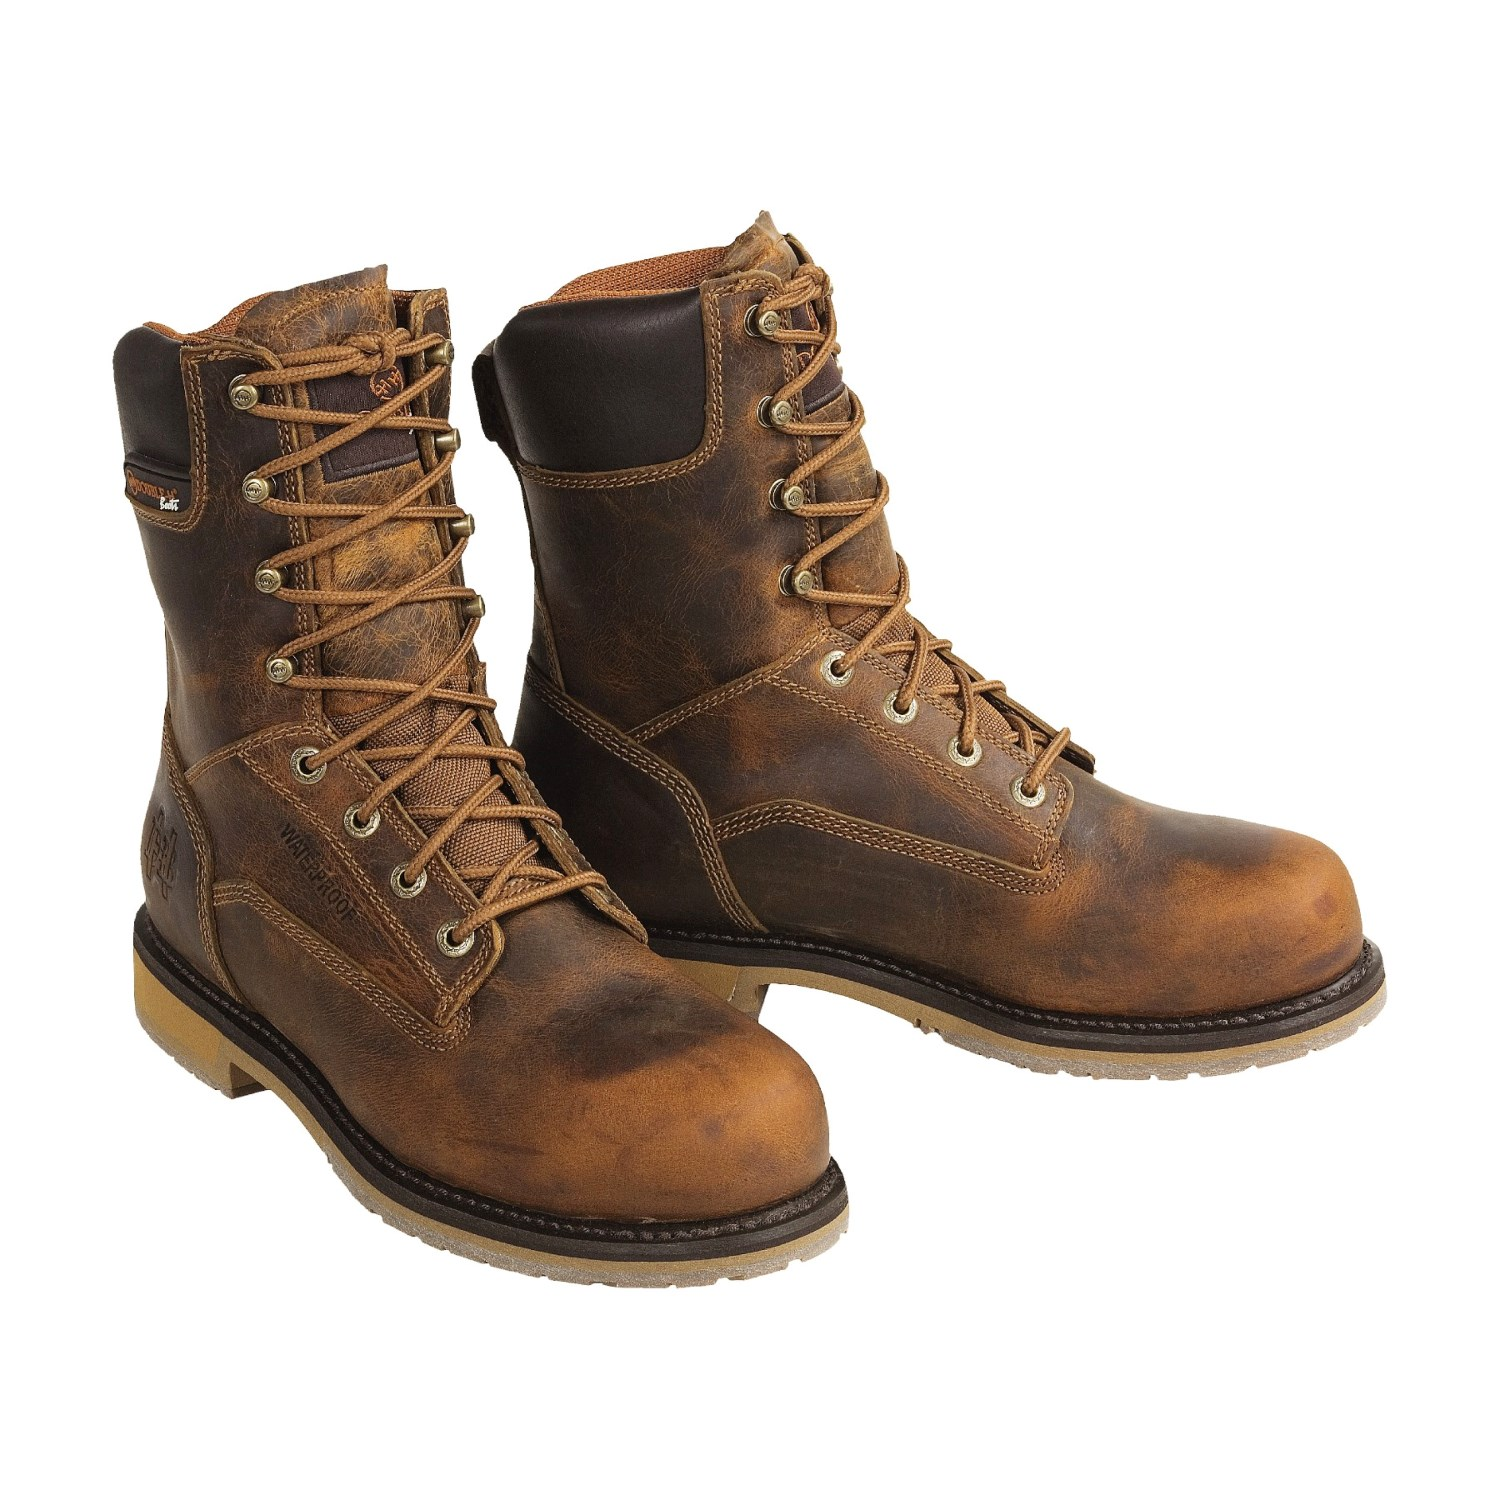 Lace Up Work Boots sGzzx86U